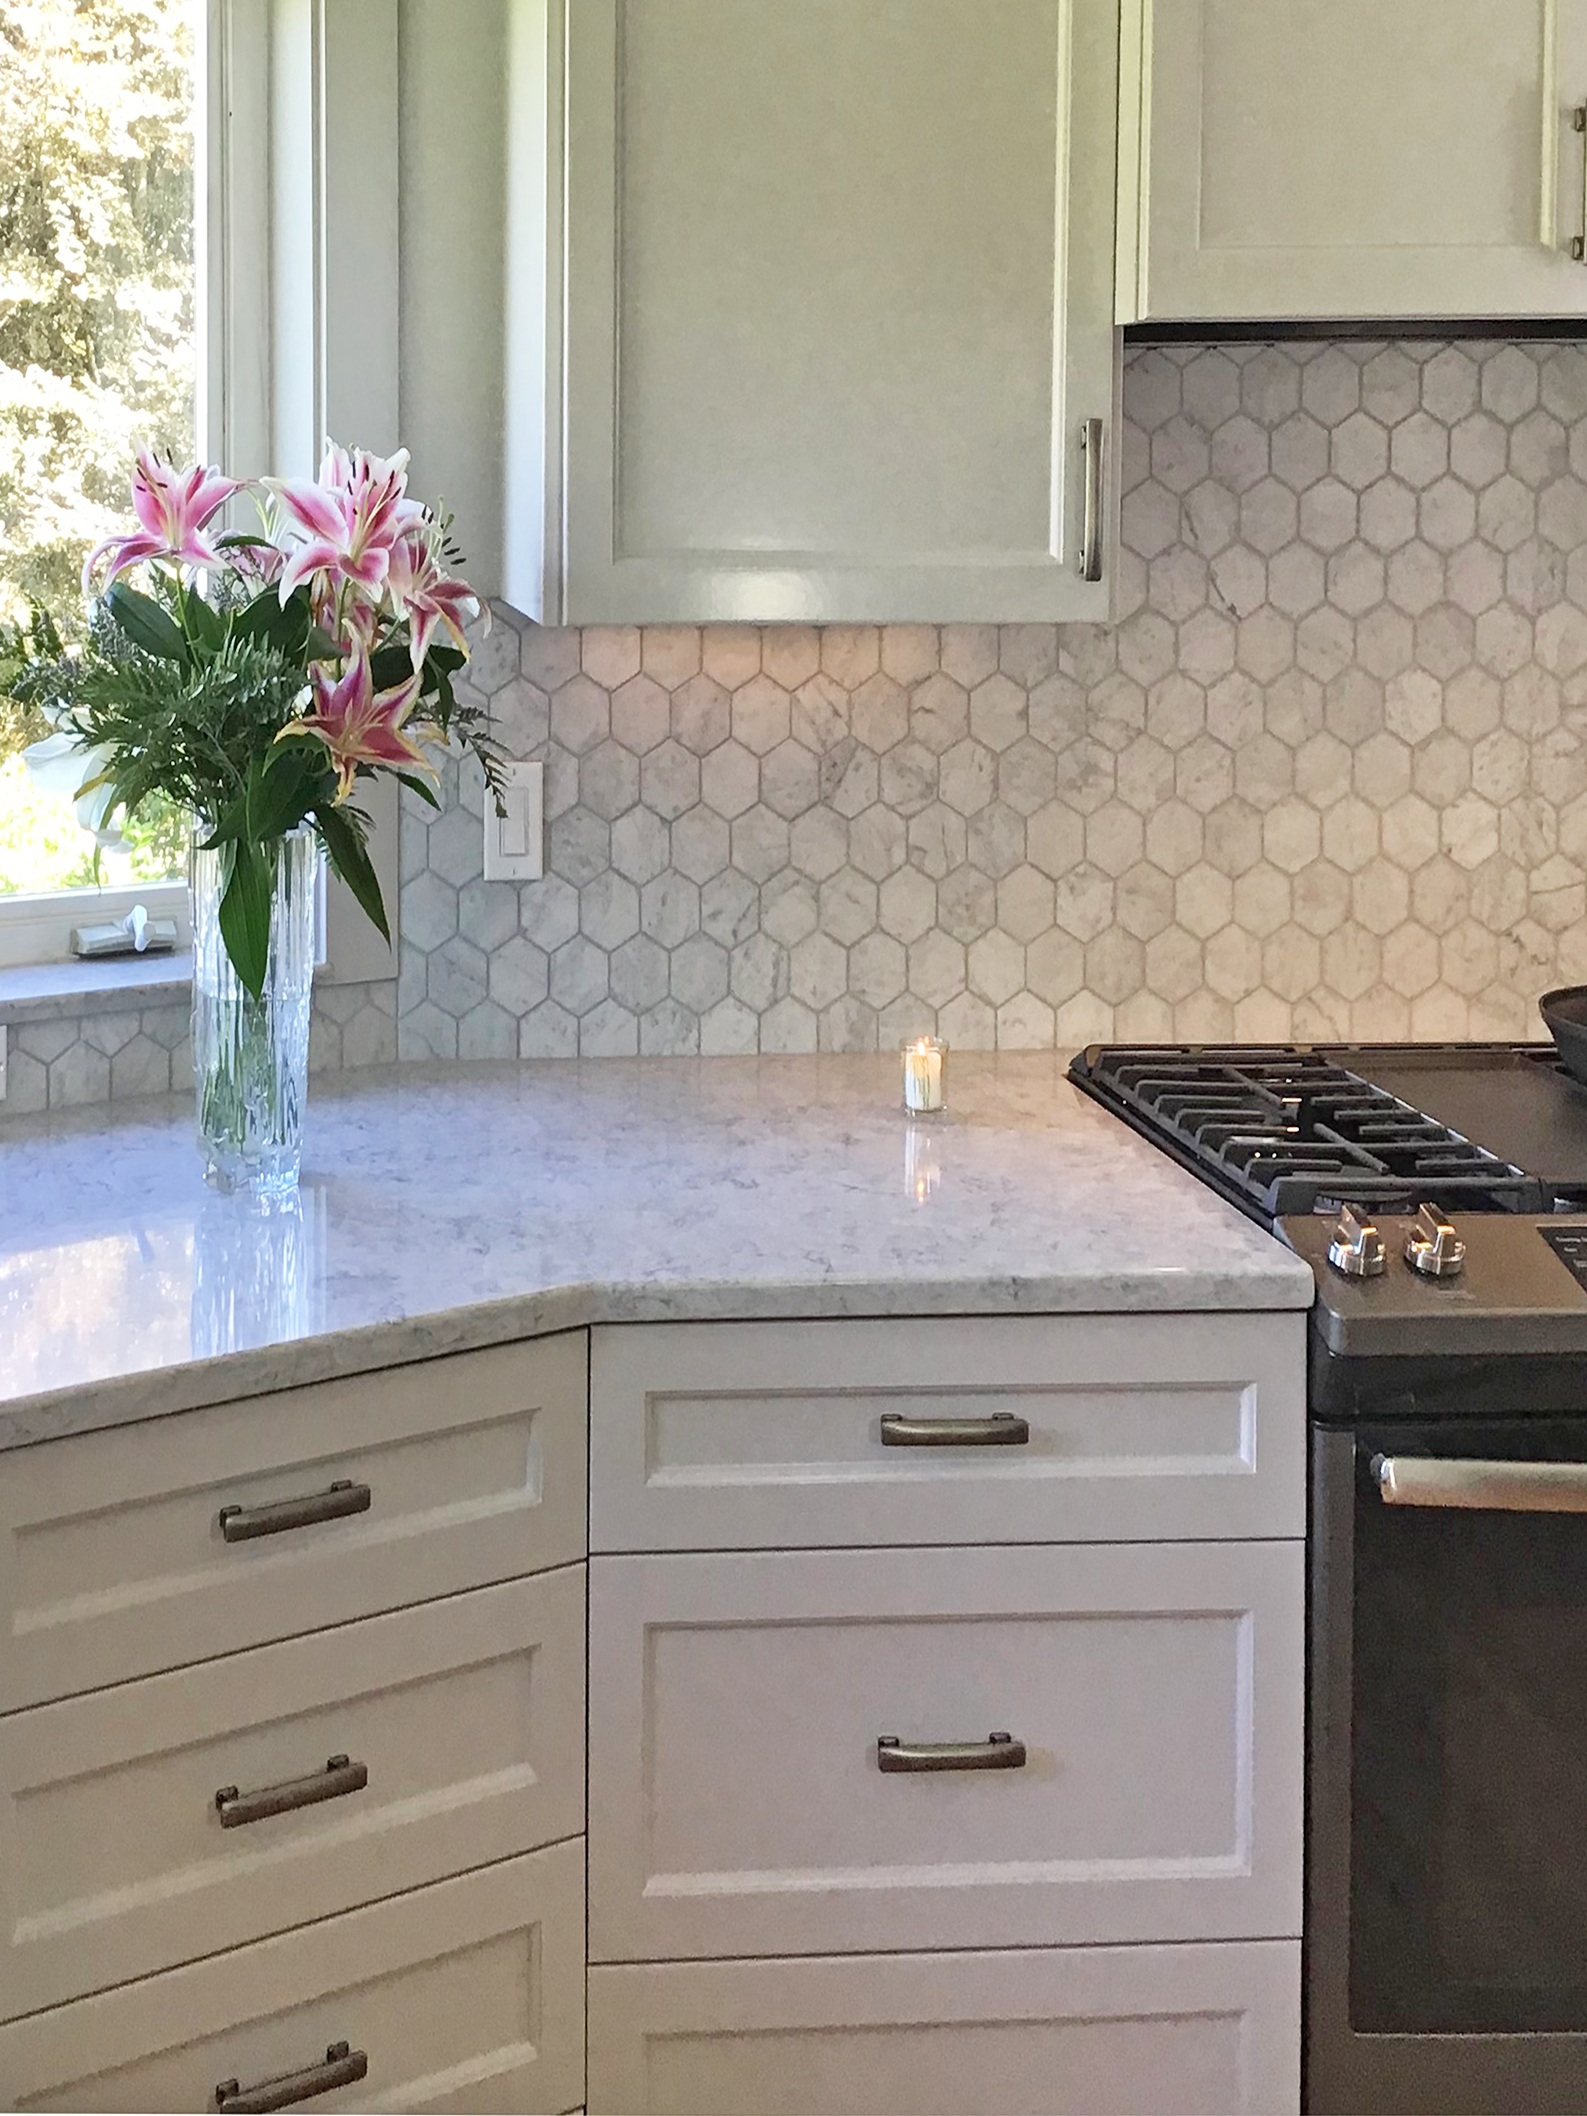 12-hour Design Package - 12 hours of Design Consultation at a discounted rate. $2500This package allows for more time to determine the actual details and specifics of the design of your project which might include drawings, product specifications, furniture, artwork, accessories, artwork, color and material selections, kitchen appliances and plumbing fixtures.12 hrs is typically sufficient for most projects, but if additional time is needed, the rate is $200 an hr., billed at 20 min. increments.* See travel note below